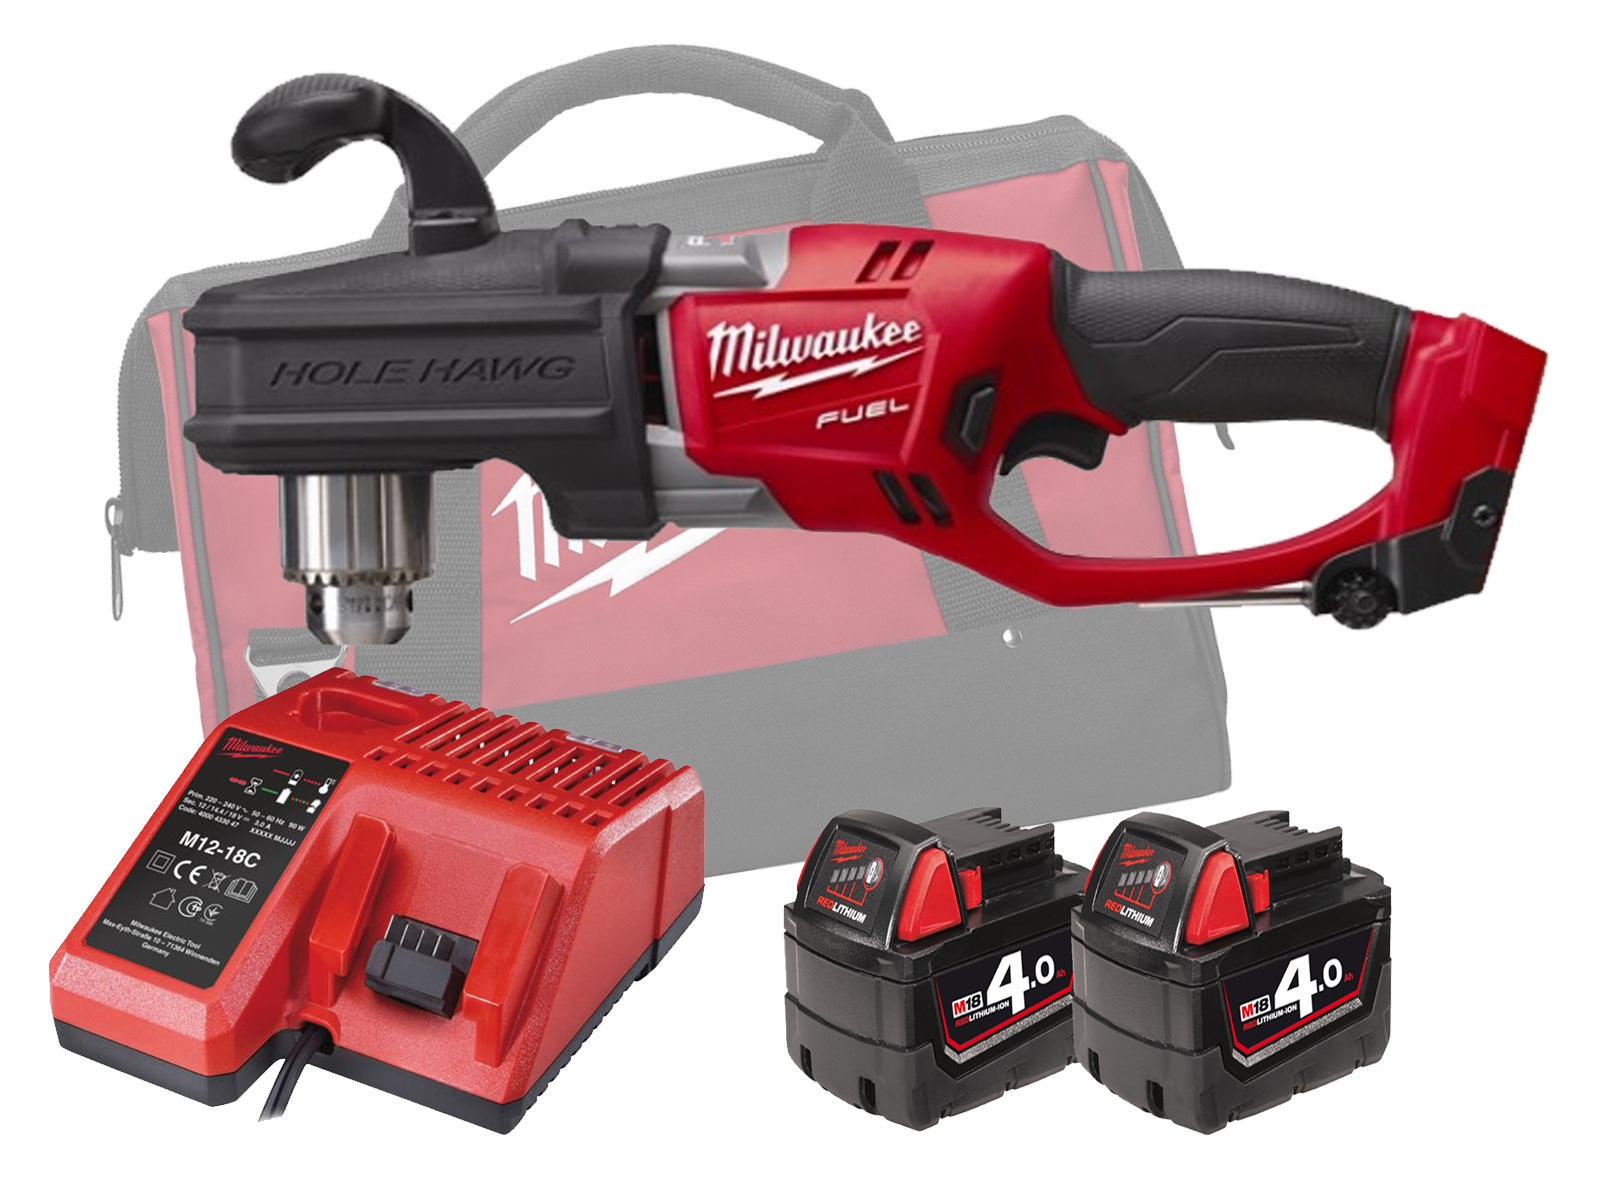 MILWAUKEE 18V FUEL BRUSHLESS RIGHT ANGLE DRILL - M18CRAD - 4.0AH PACK